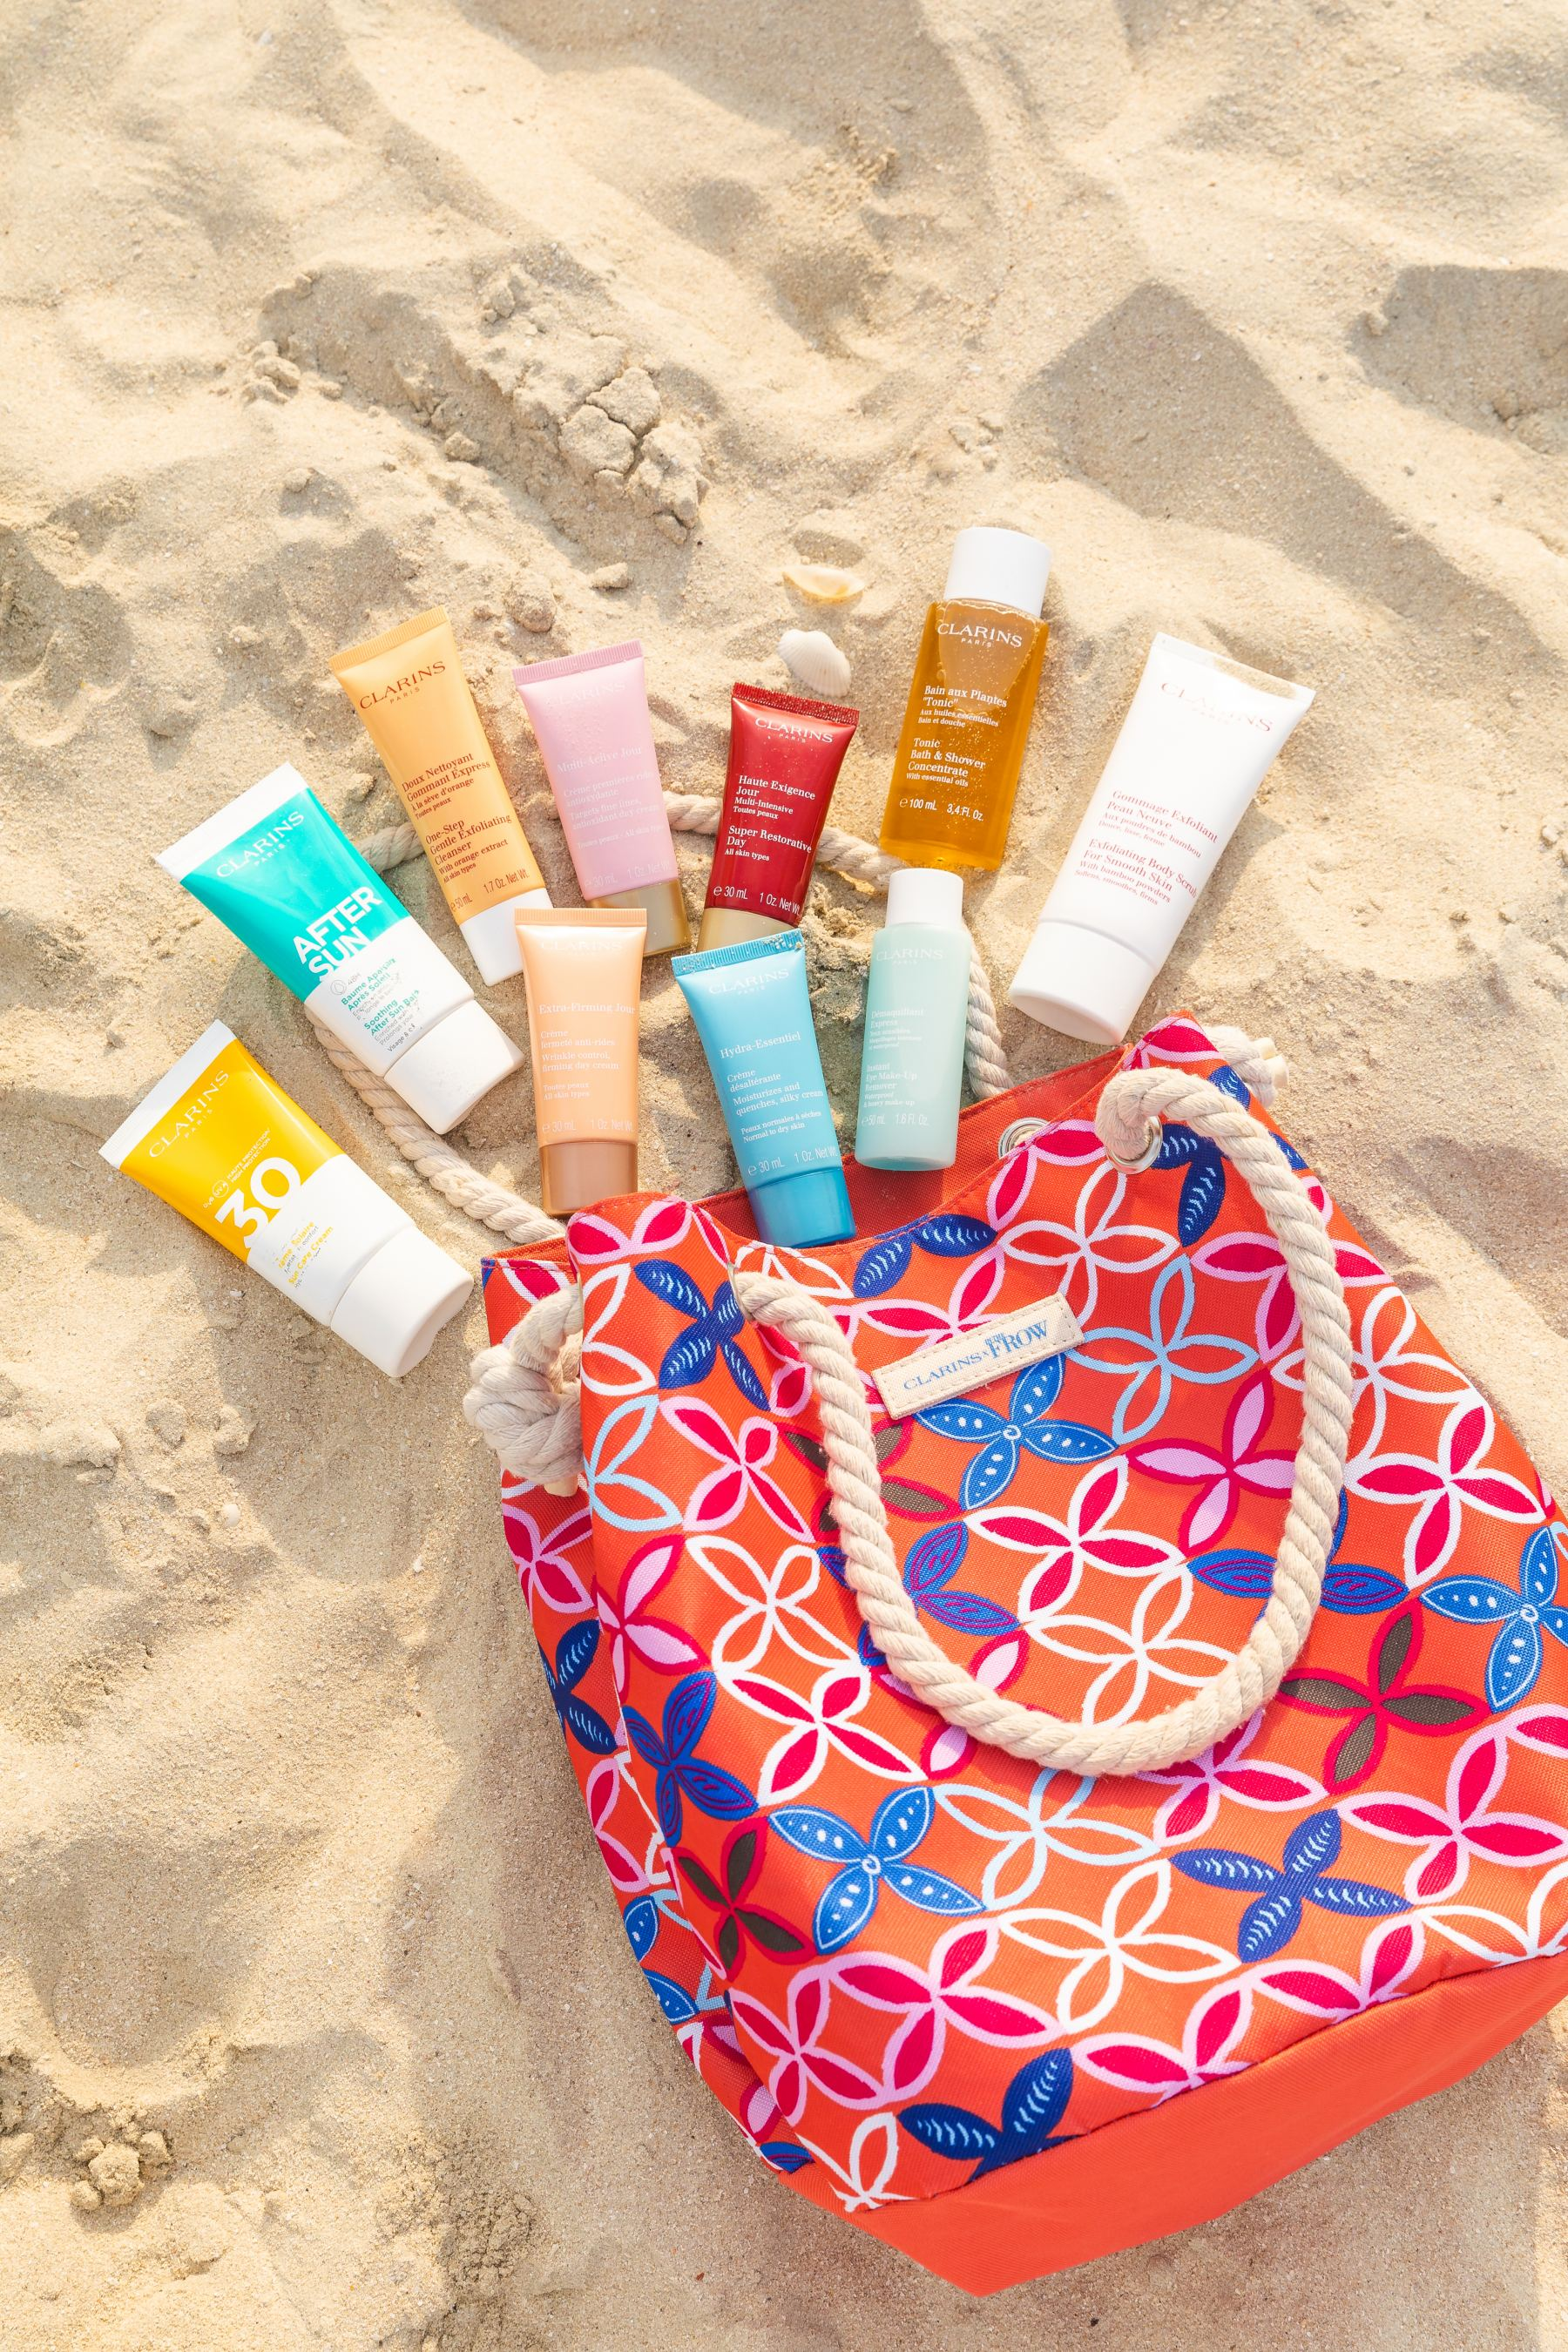 Clarins x Inthefrow Summer Tote Bag